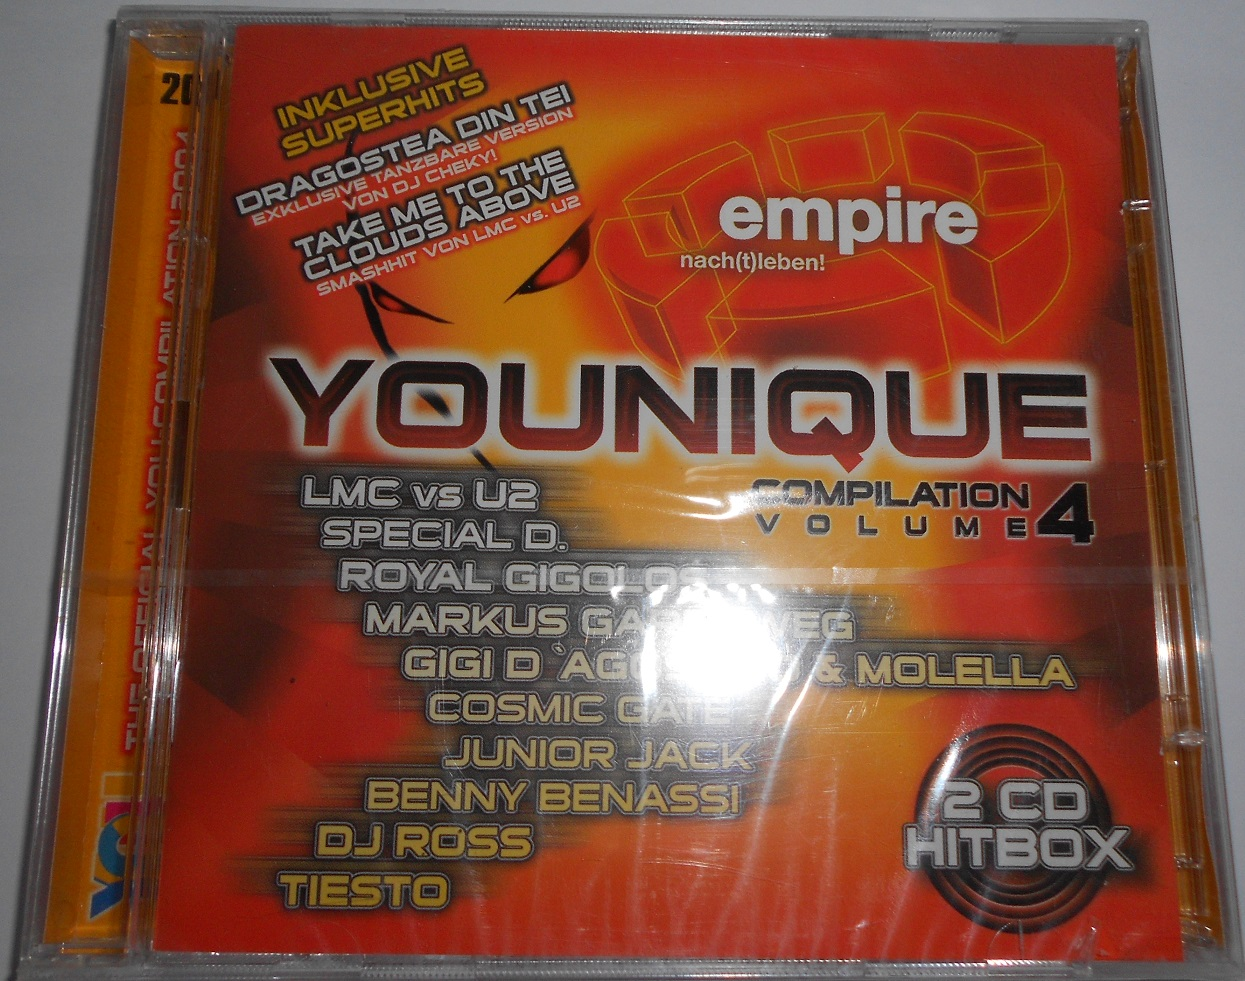 V/A - Empire Compilation Volume 4 Younique (CD)